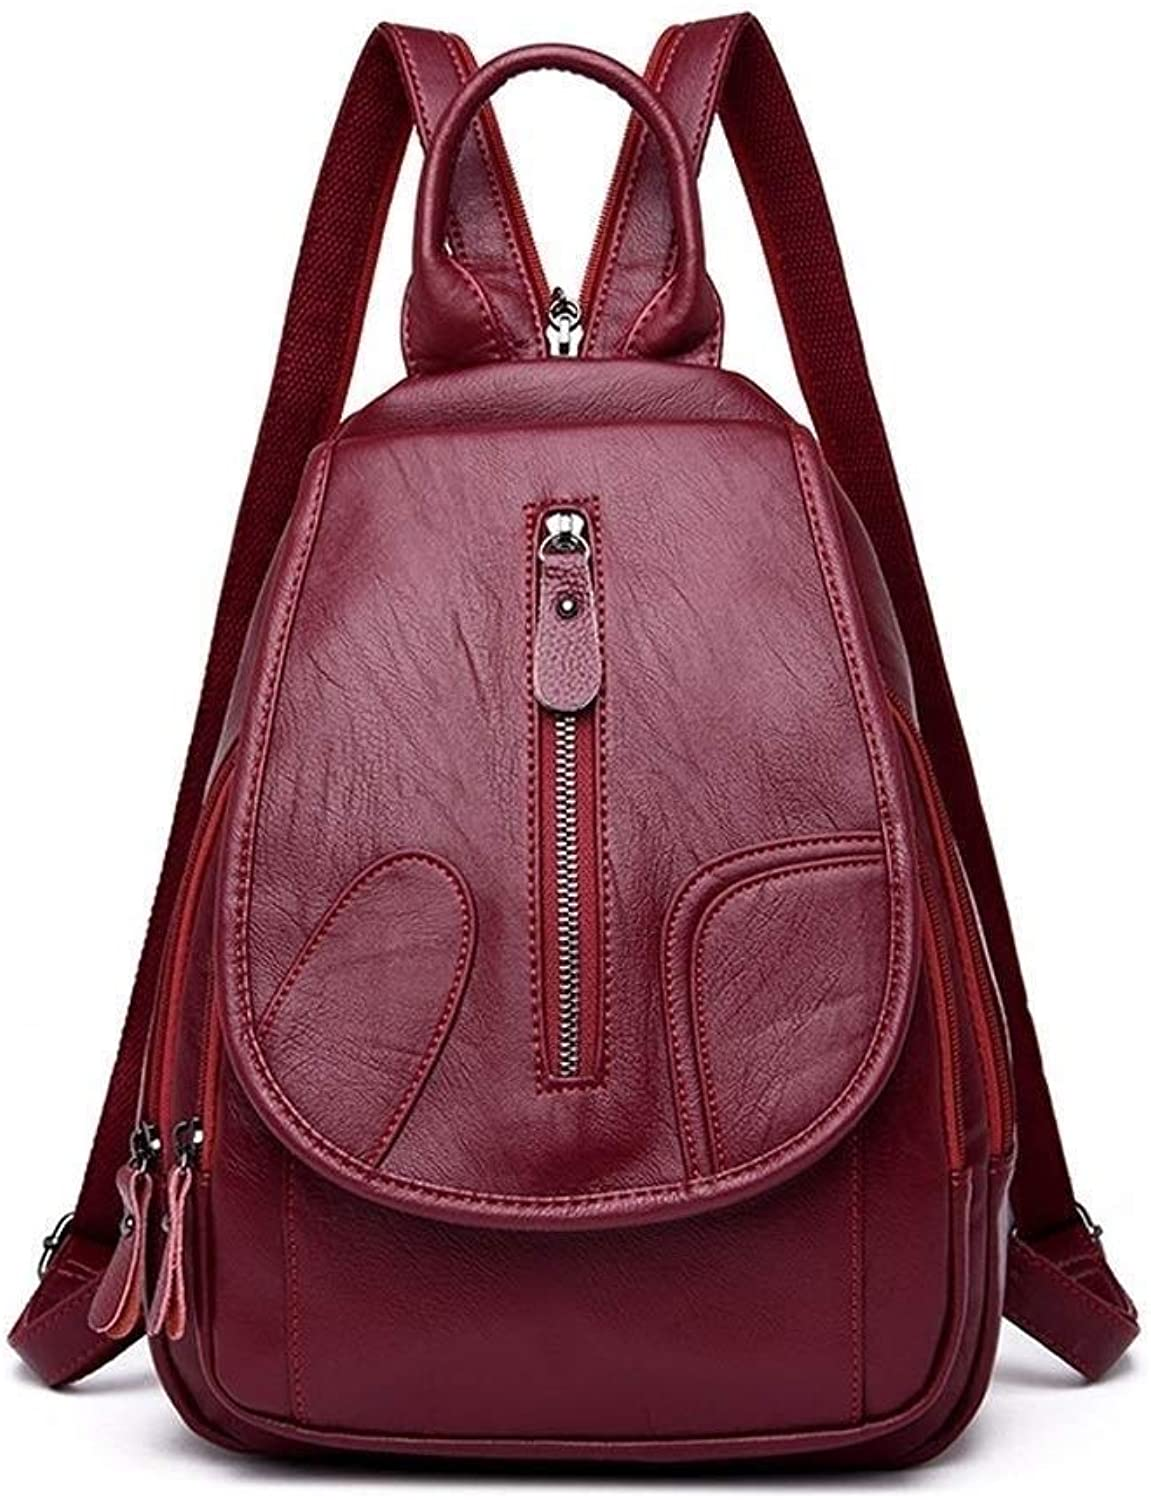 MUTANG Fashion Causal PU Leather Backpack Purse for Women Shoulder Bag Travel Daypack (color   Red)